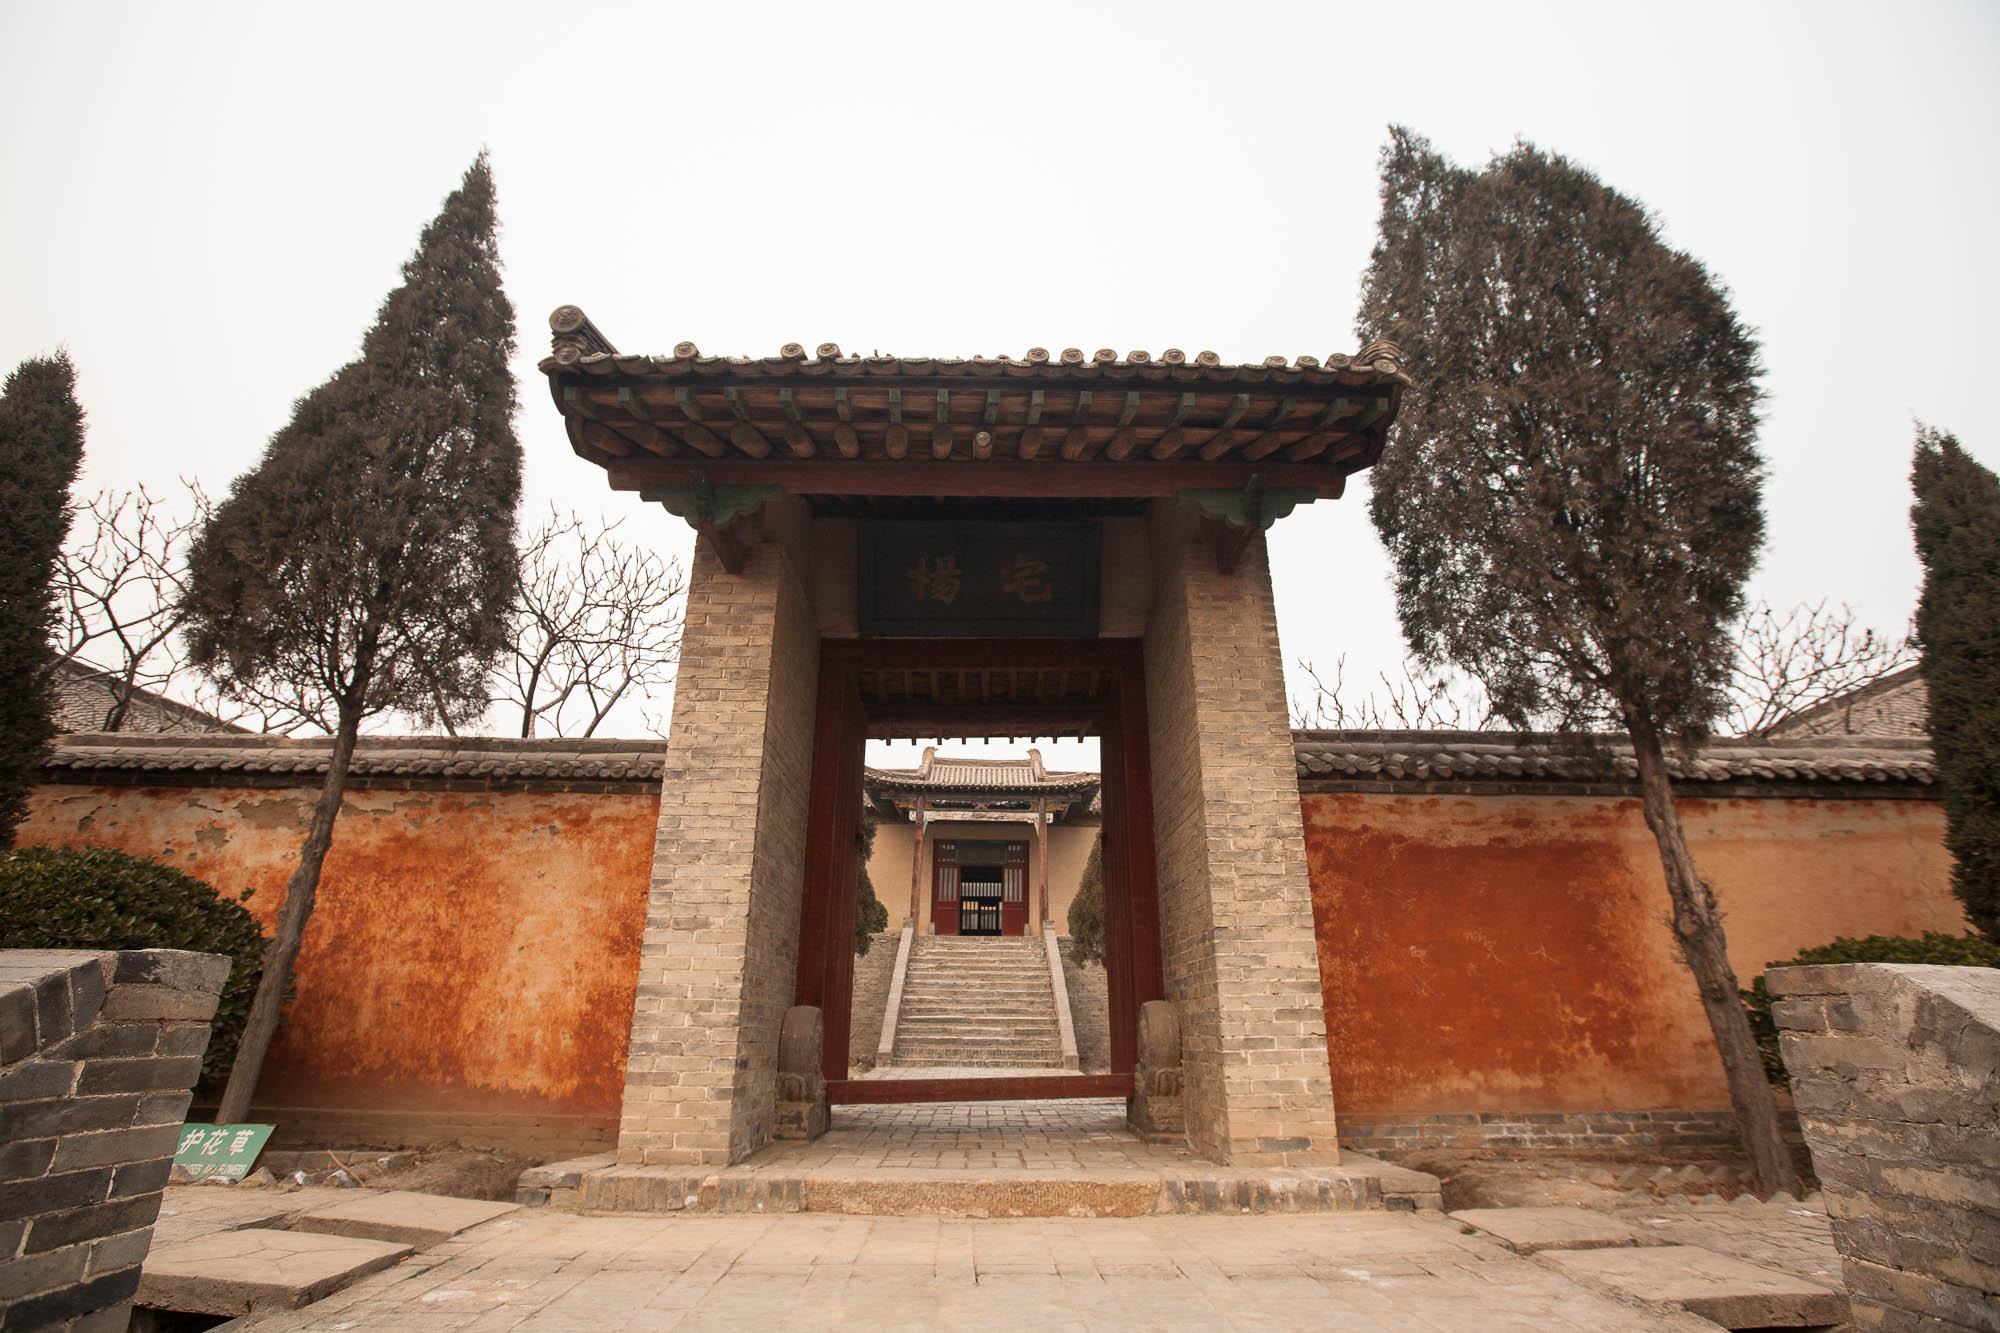 temple dedicated to Yang Guifei